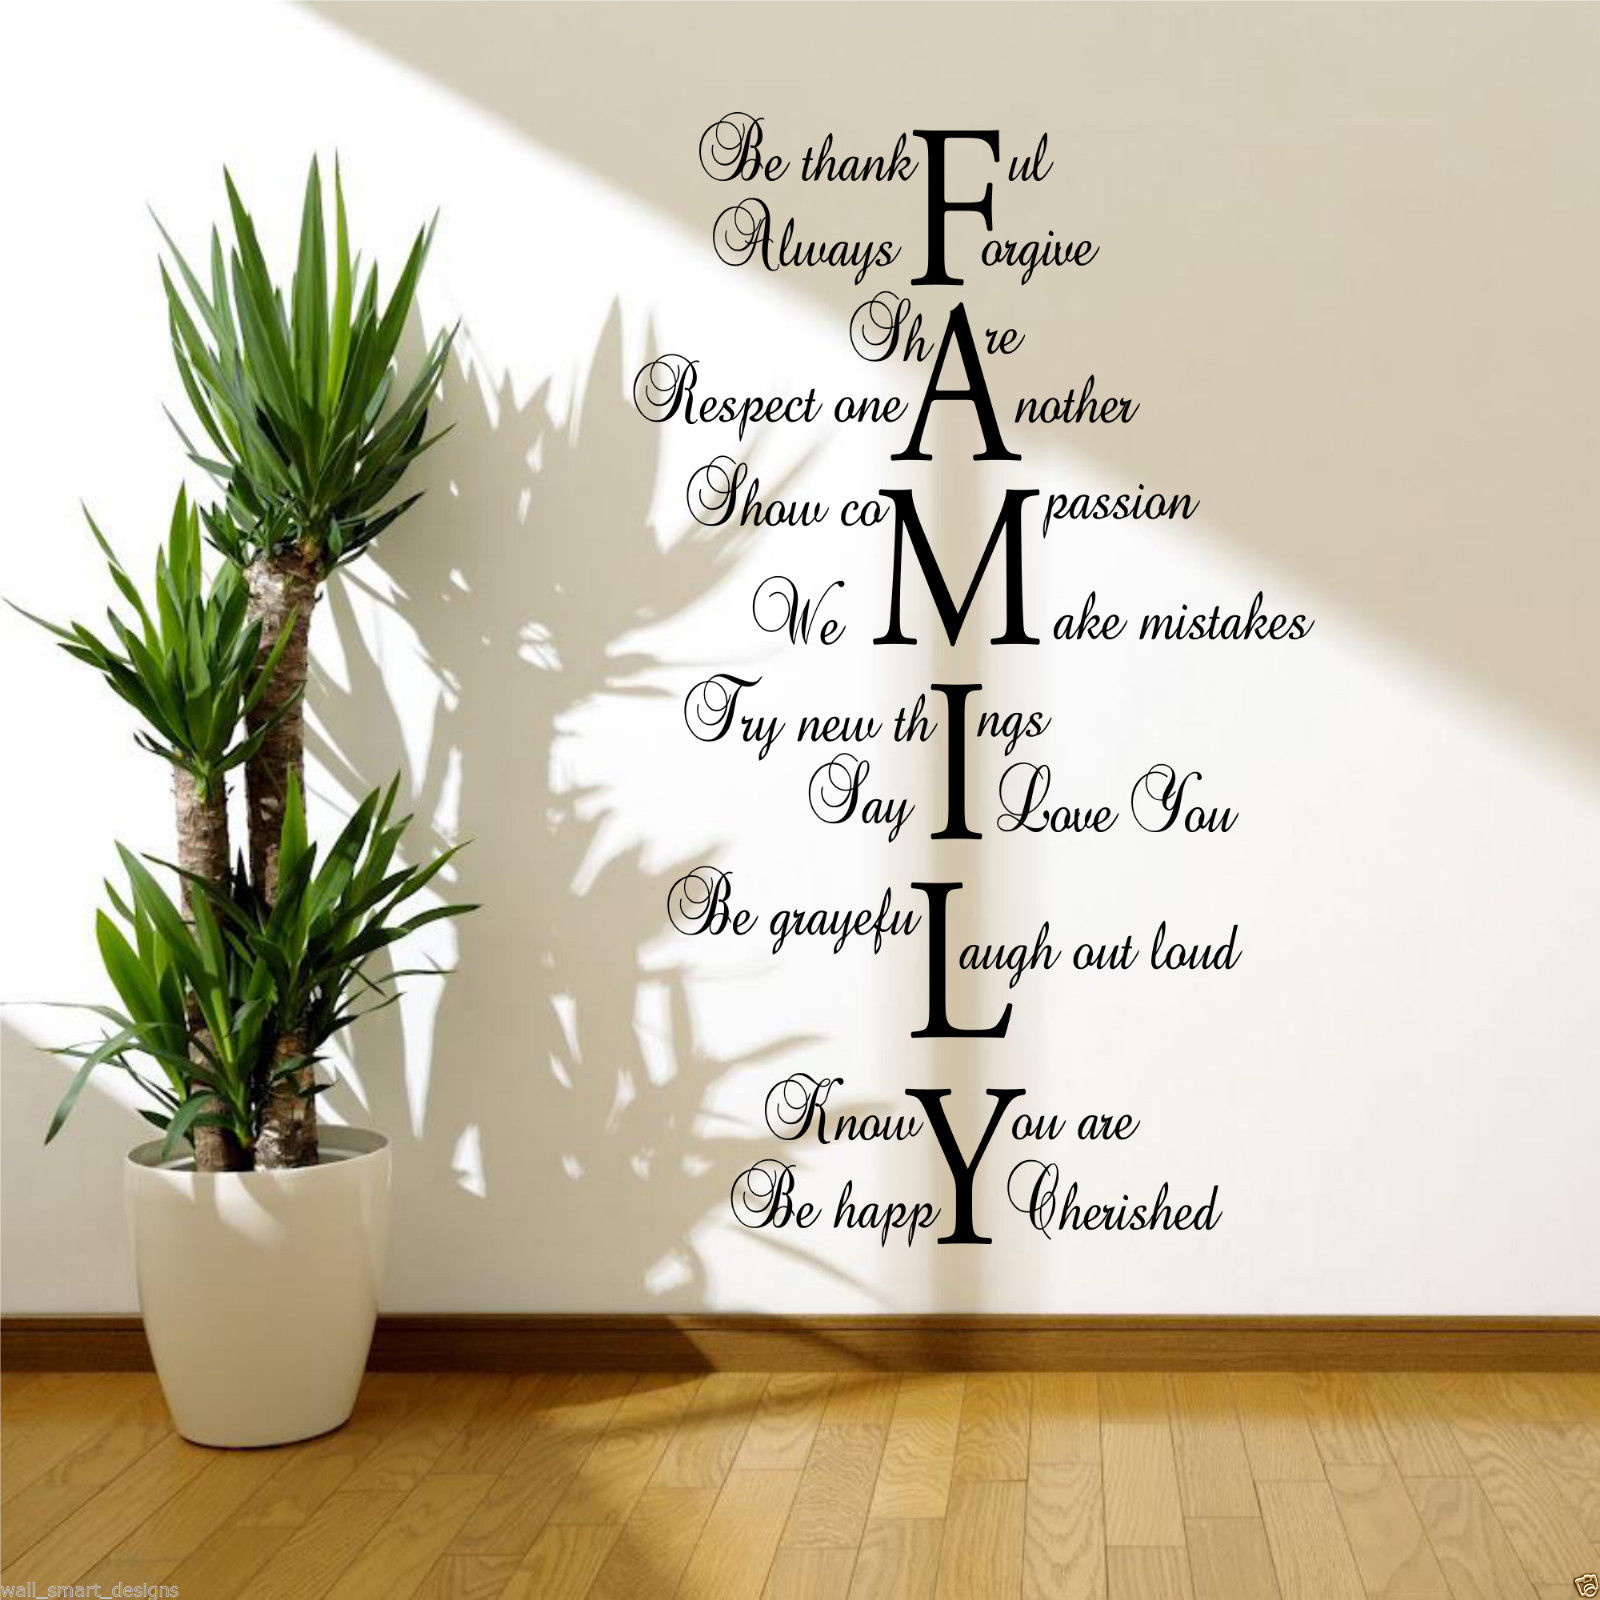 Family love life wall art sticker quote room decal mural for Decoration quotes